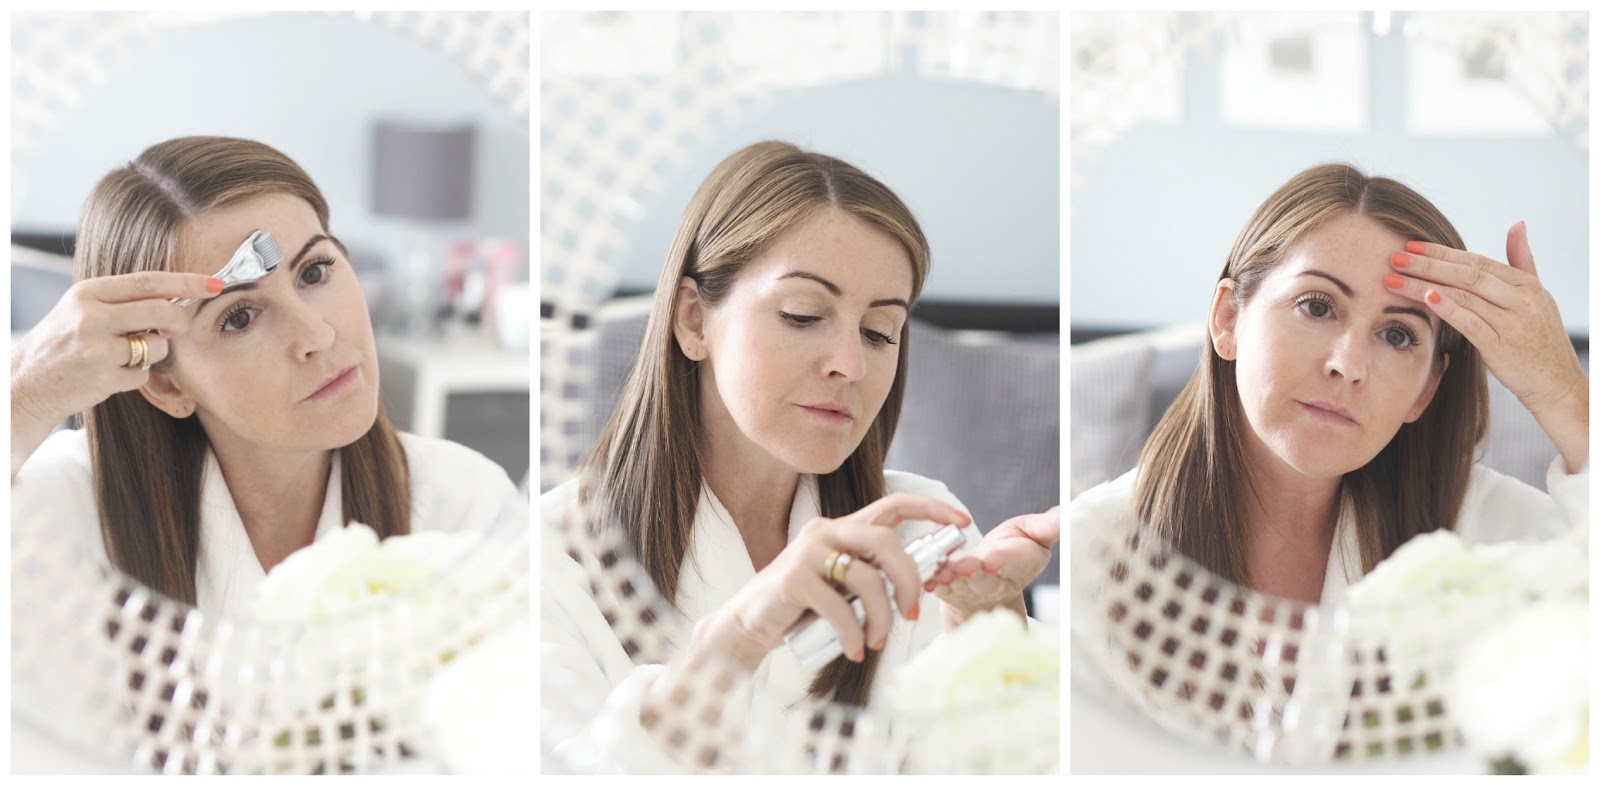 Skin roller \ micro needling \ Swiss clinics \ beauty \ review \ anti-aging \ skin renewal \ Priceless Life of Mine \ Over 40 lifestyle blog